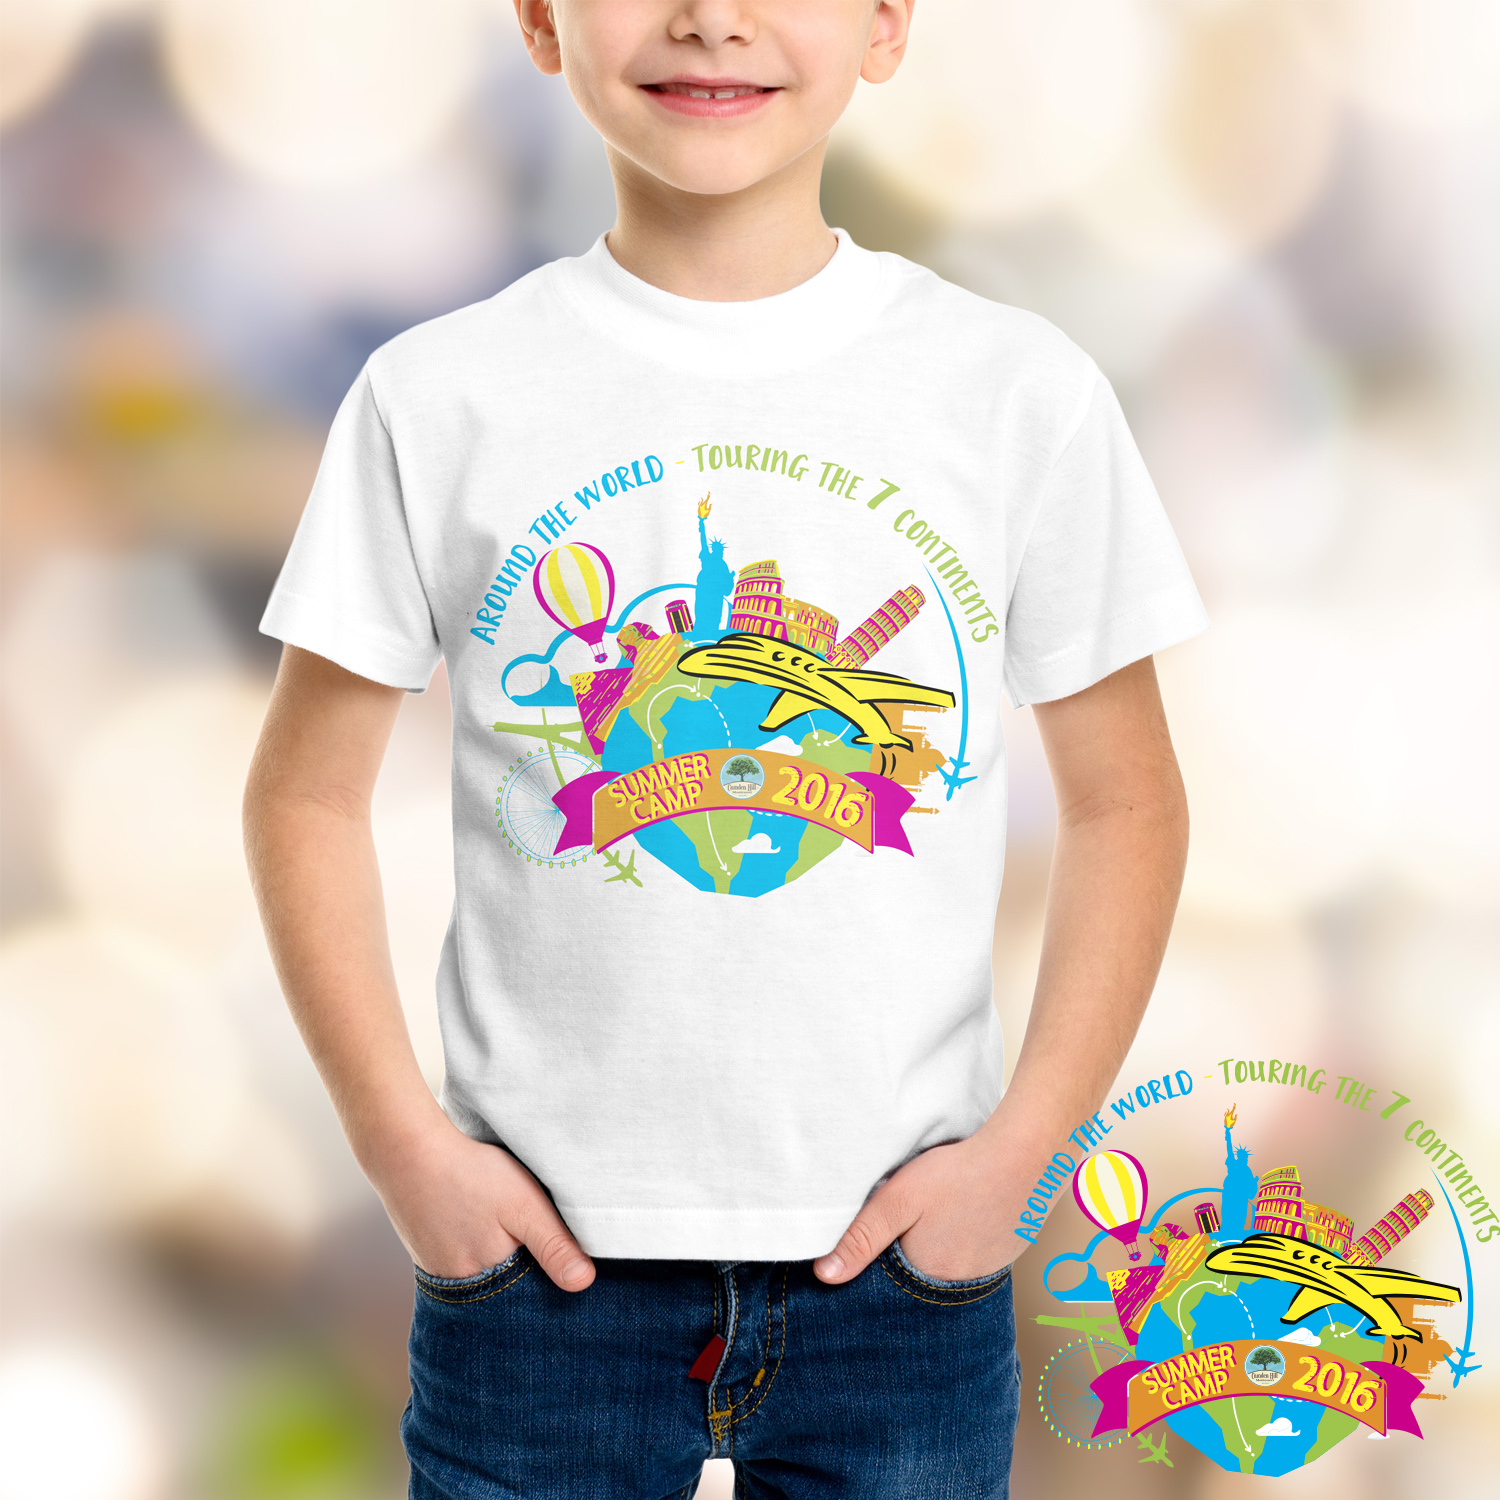 Playful, Personable, Preschool T-shirt Design for a Company by Irina ...